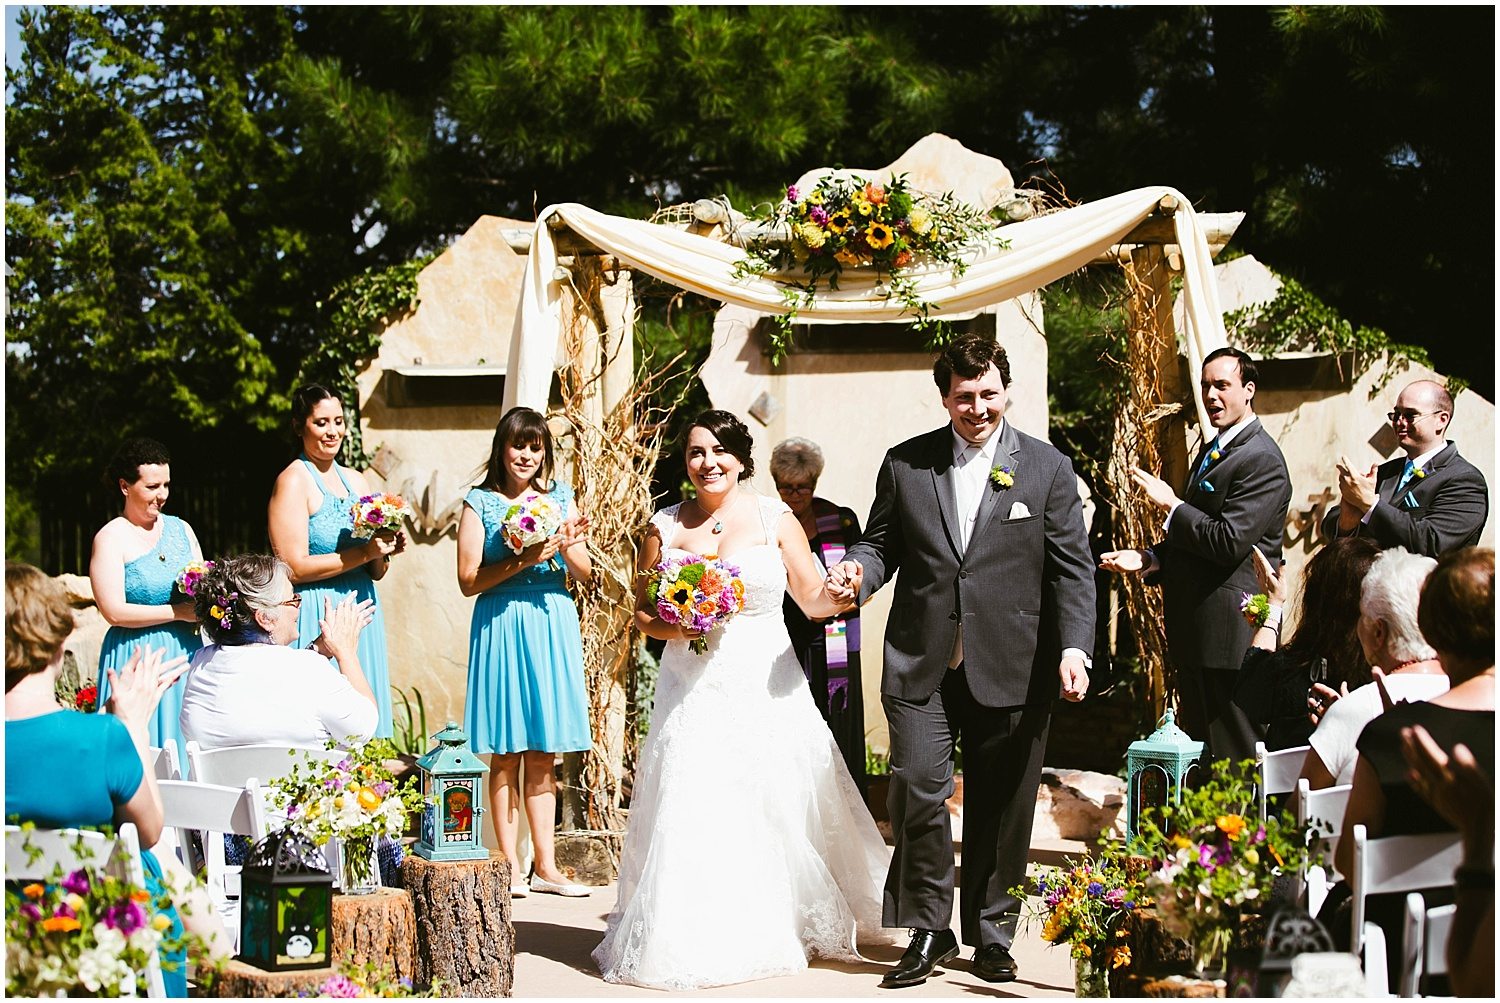 Ceremony Inspiration Photos by Jasper K Photography | Ryan proposed to Mallory at the Studio Ghibli Museum in Mitaka, Japan so it was fitting that their beautiful wedding day at Nature Pointe weddings in Tijeras, New Mexico was like a Miyazaki film come to life. A lot of planning went into their wedding. The magic of Miyazaki's films is unlike any other so incorporating the magnificence of his imagination into Mallory + Ryan's wedding day was a must. The intricacy of their wedding details were absolutely AMAZING!